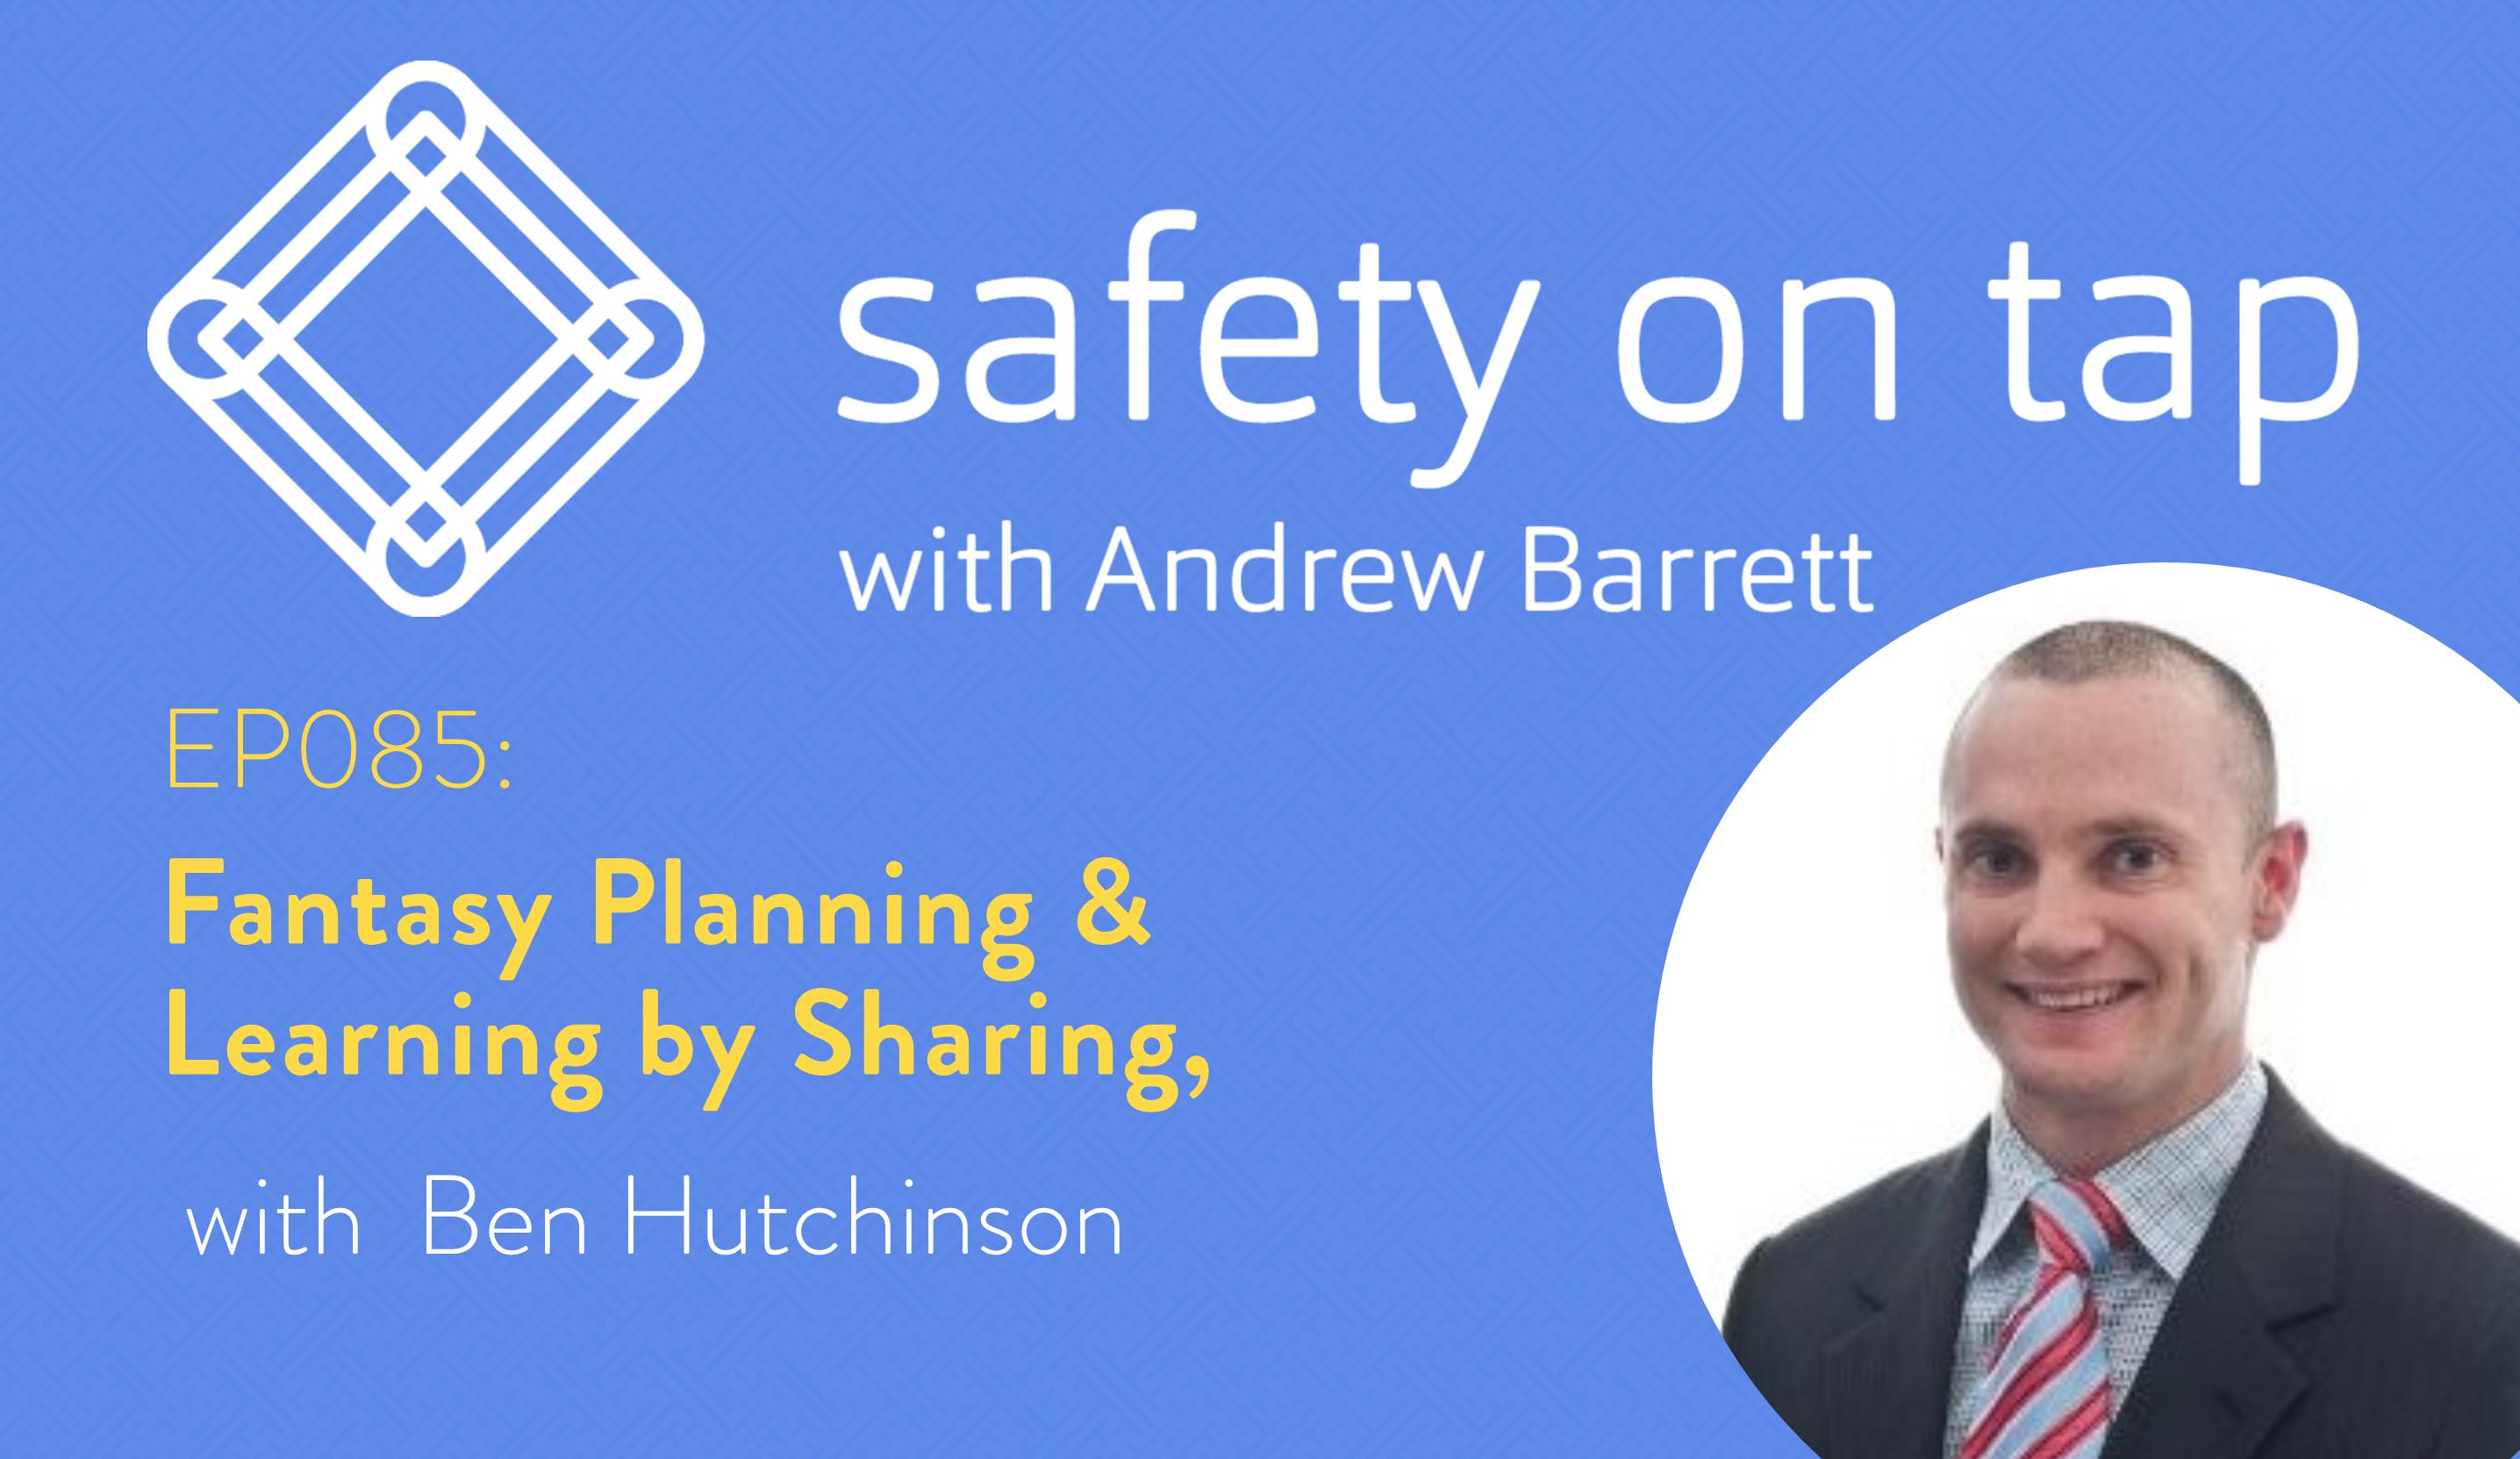 Ep085: Fantasy Planning & Learning by Sharing, with Ben Hutchinson